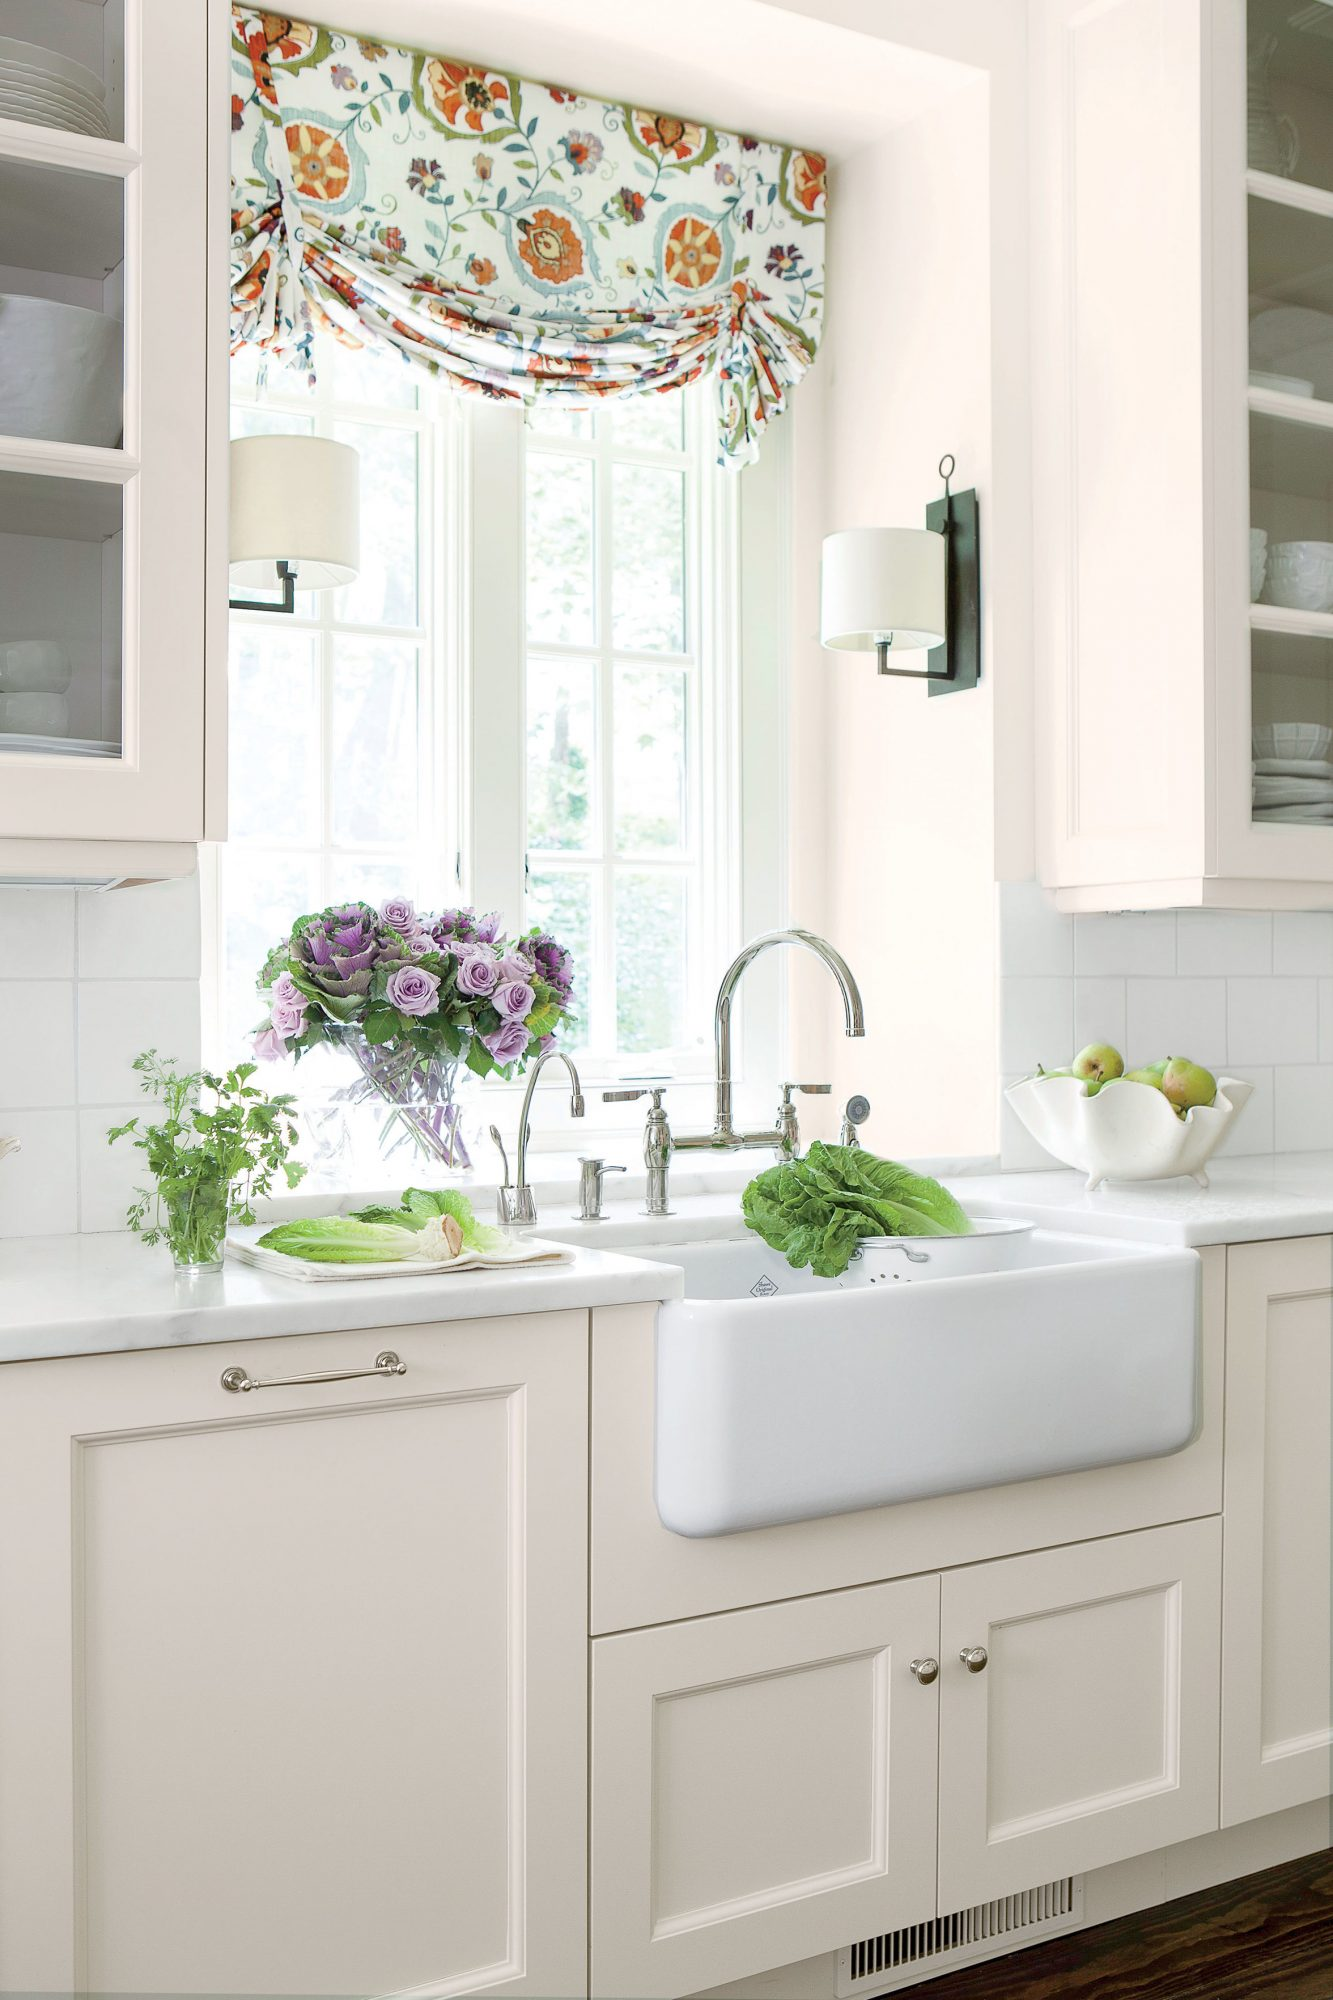 The One Thing I Wish Someone Would Have Told Me Before I Bought a Farmhouse Sink